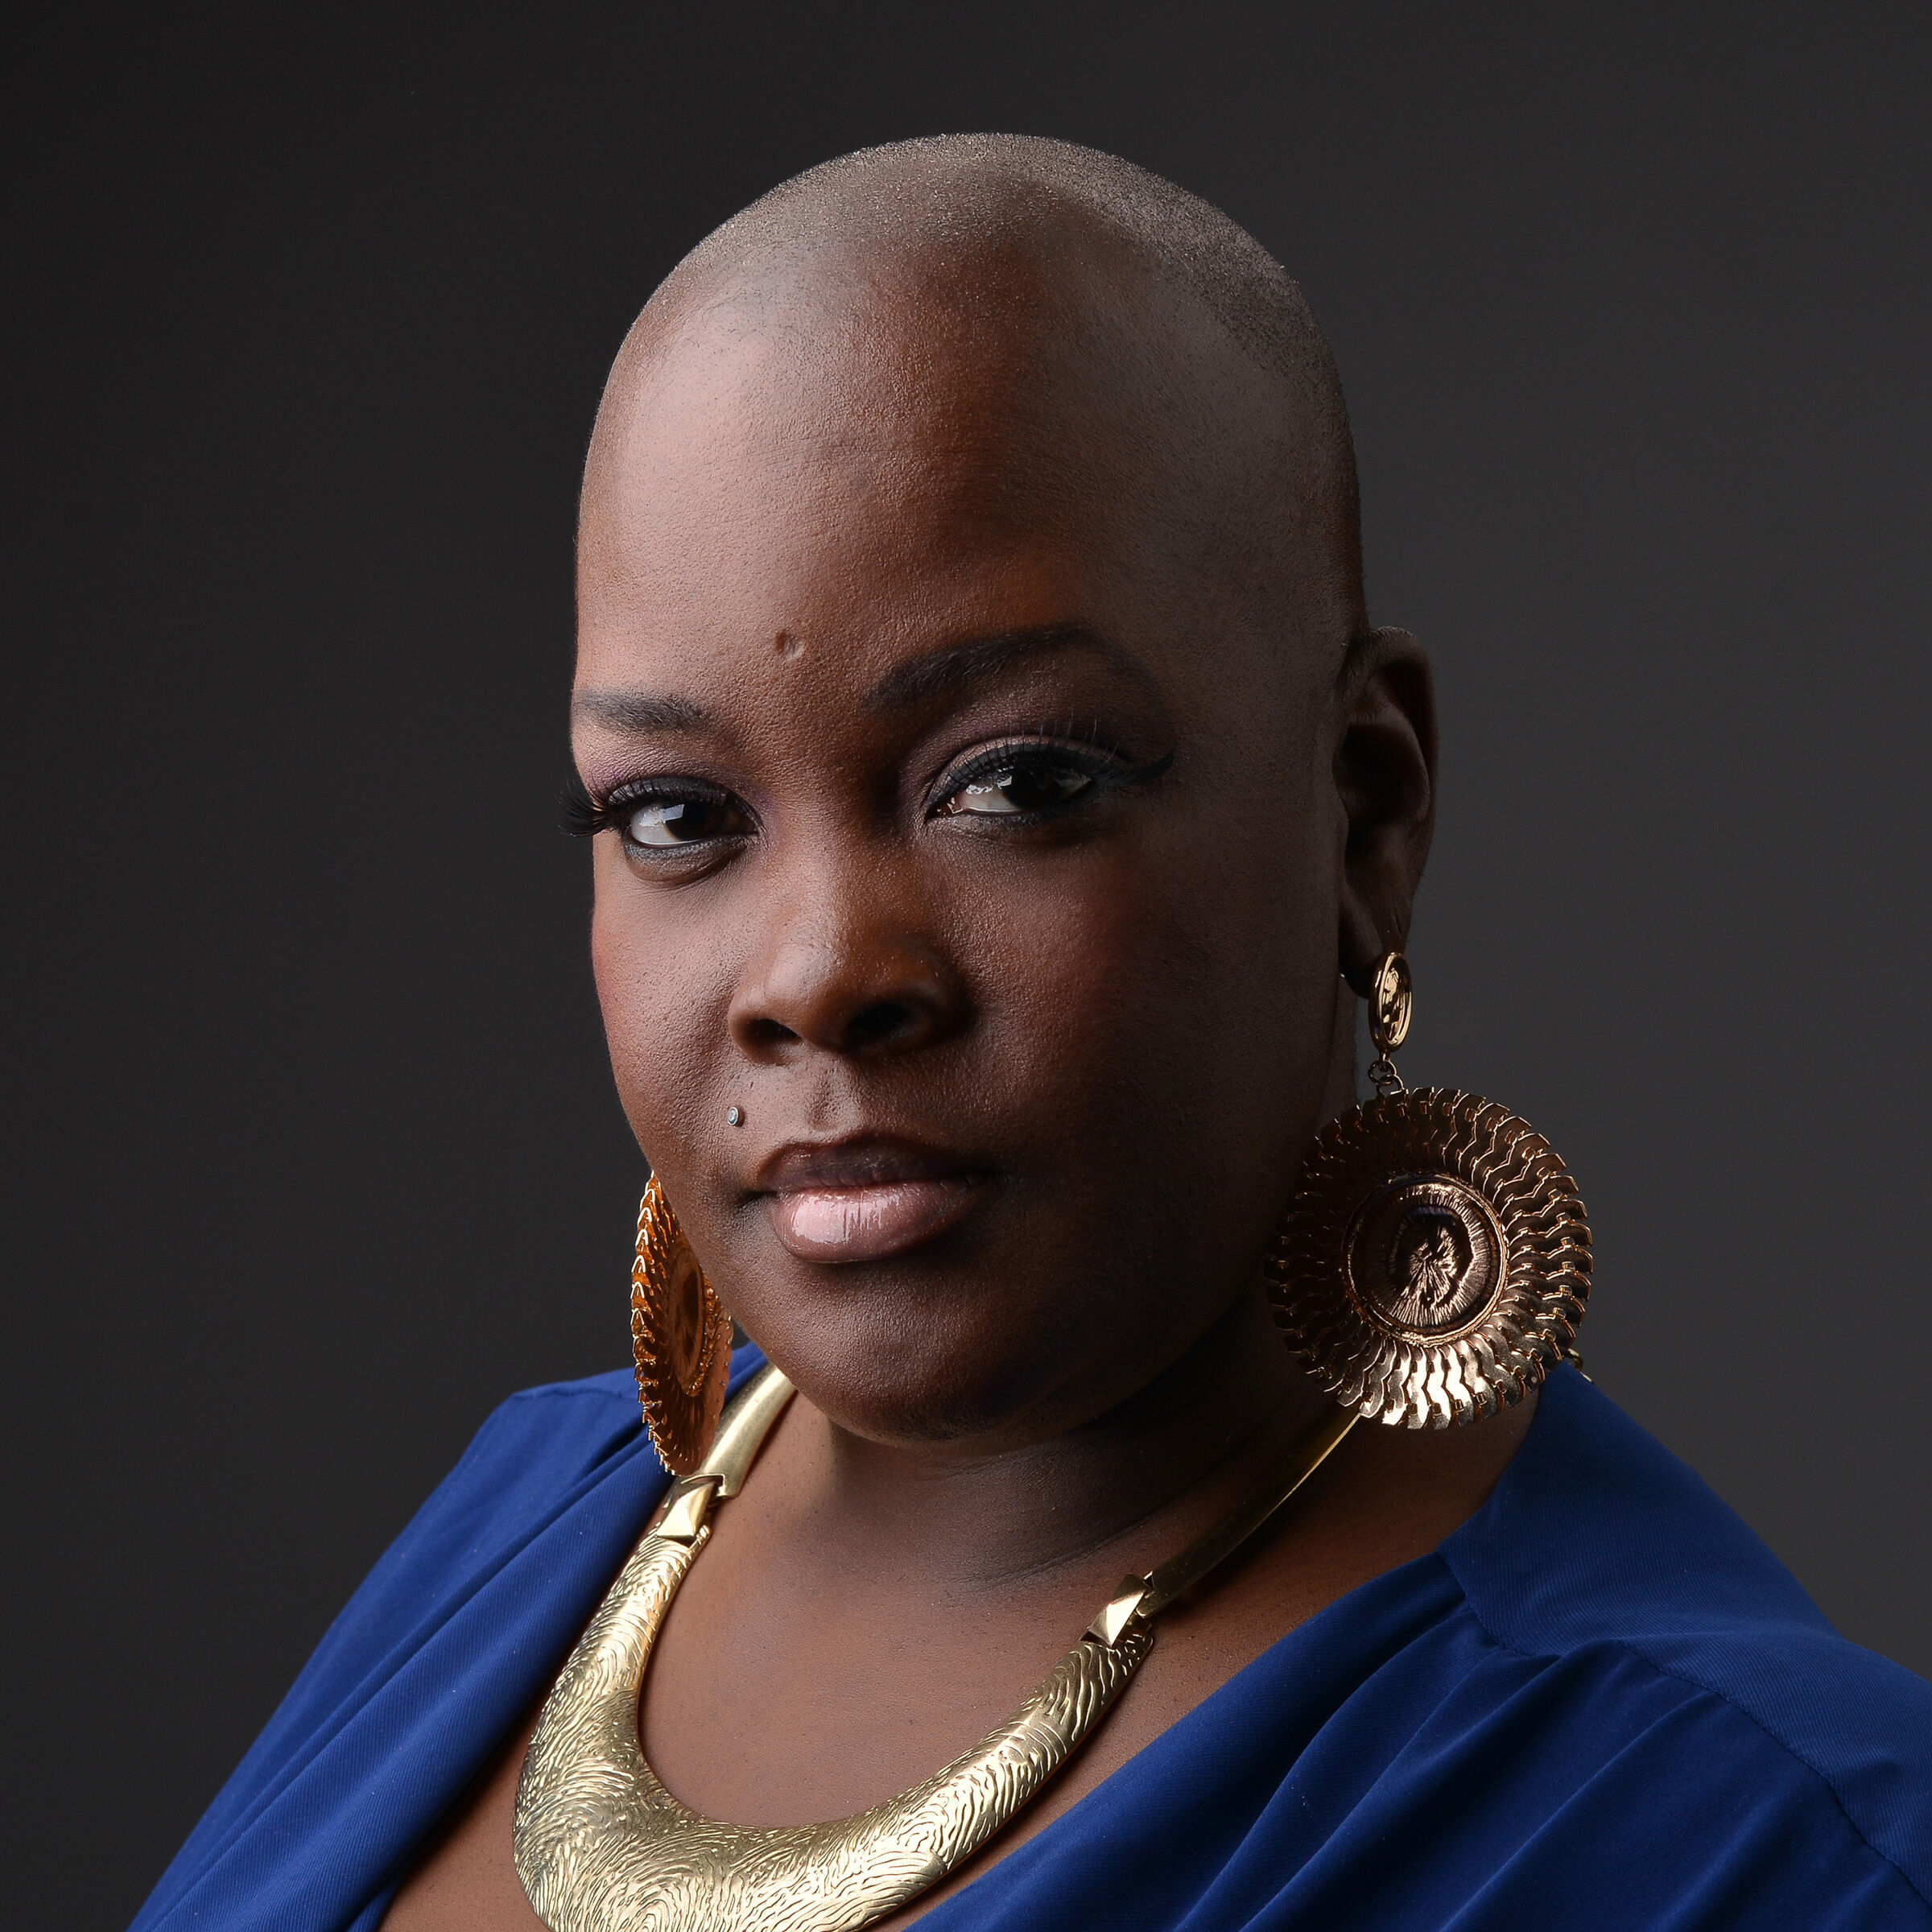 A picture of Sonya Renee Taylor